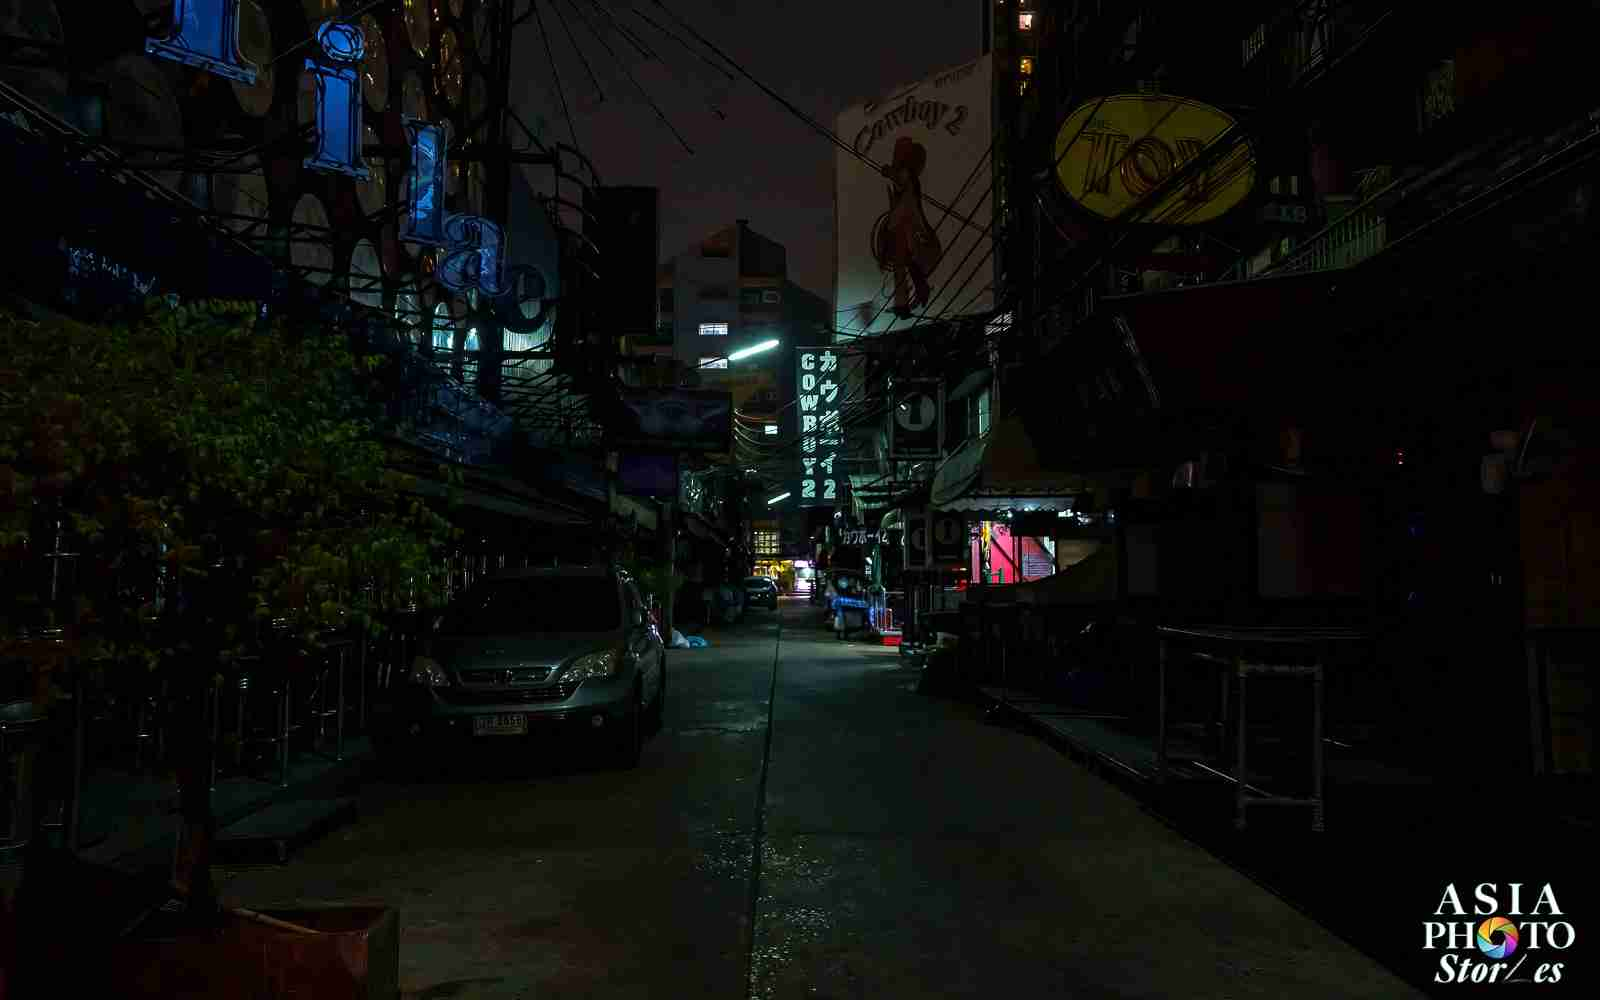 Soi Cowboy is nearly pitch dark. Closed March 18, it's uncertain when Bangkok's world-famous red light district will reopen.